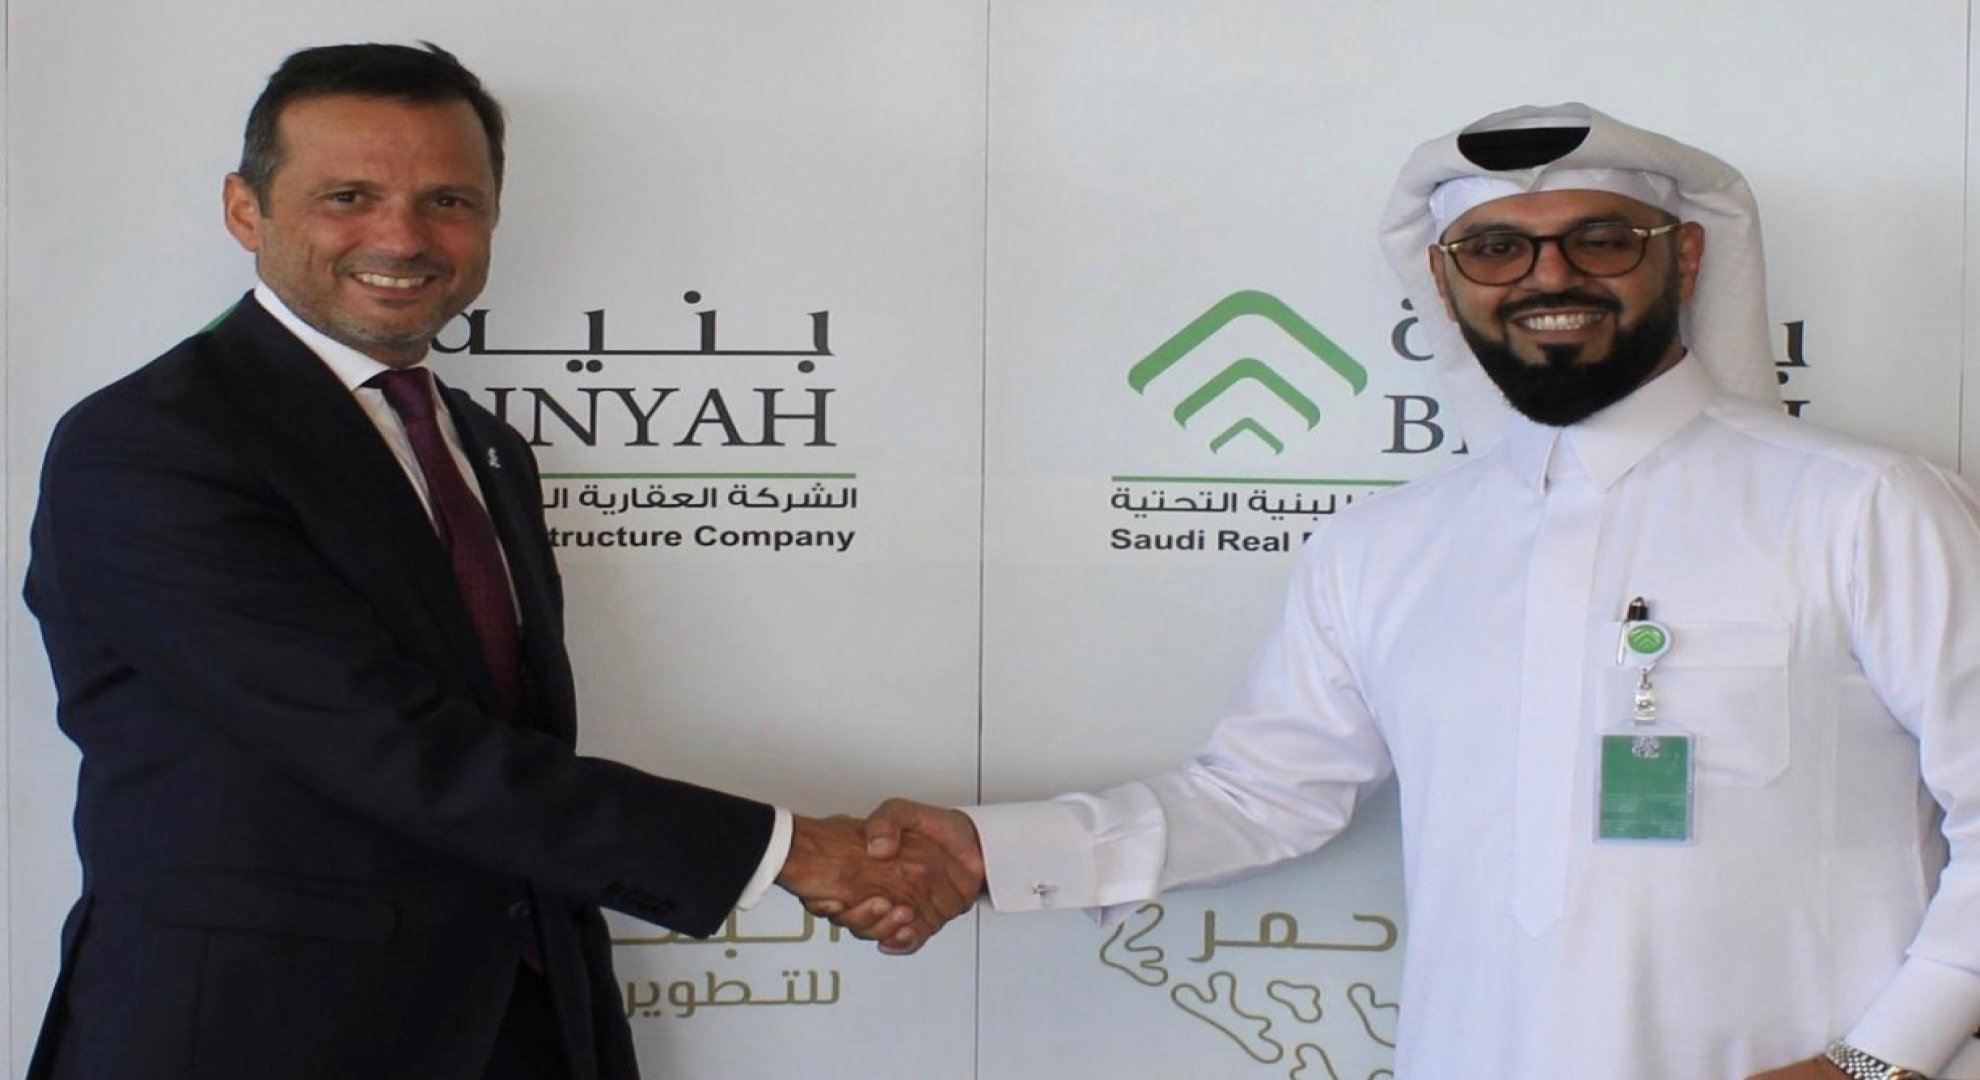 Binyah signs a contract with Red Sea Development Company